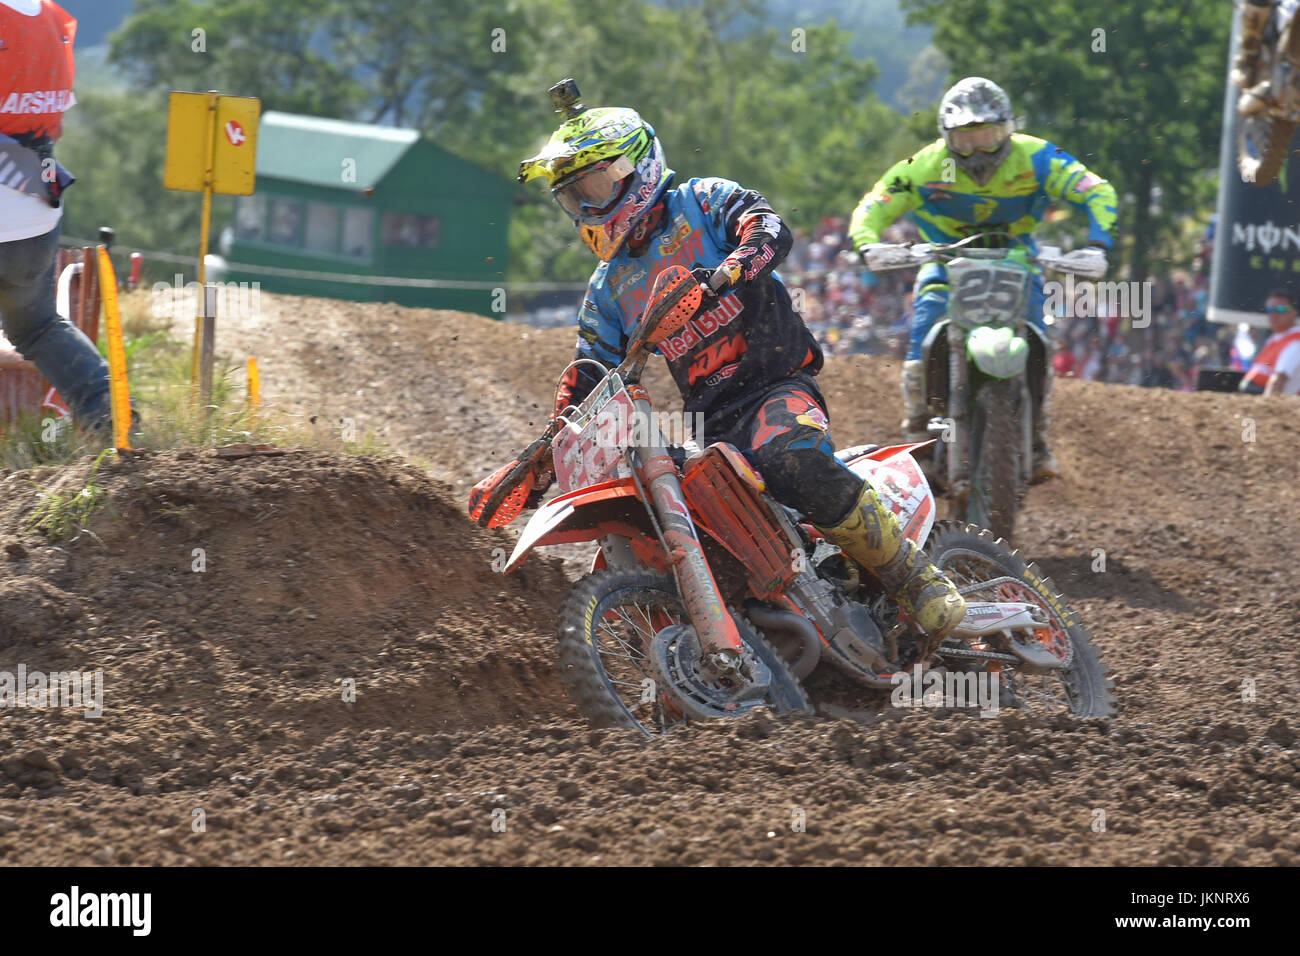 Loket, Czech Republic. 23rd July, 2017. L-R Antonio Cairoli (Italy) and Clement Desalle (Belgium) race during the Stock Photo